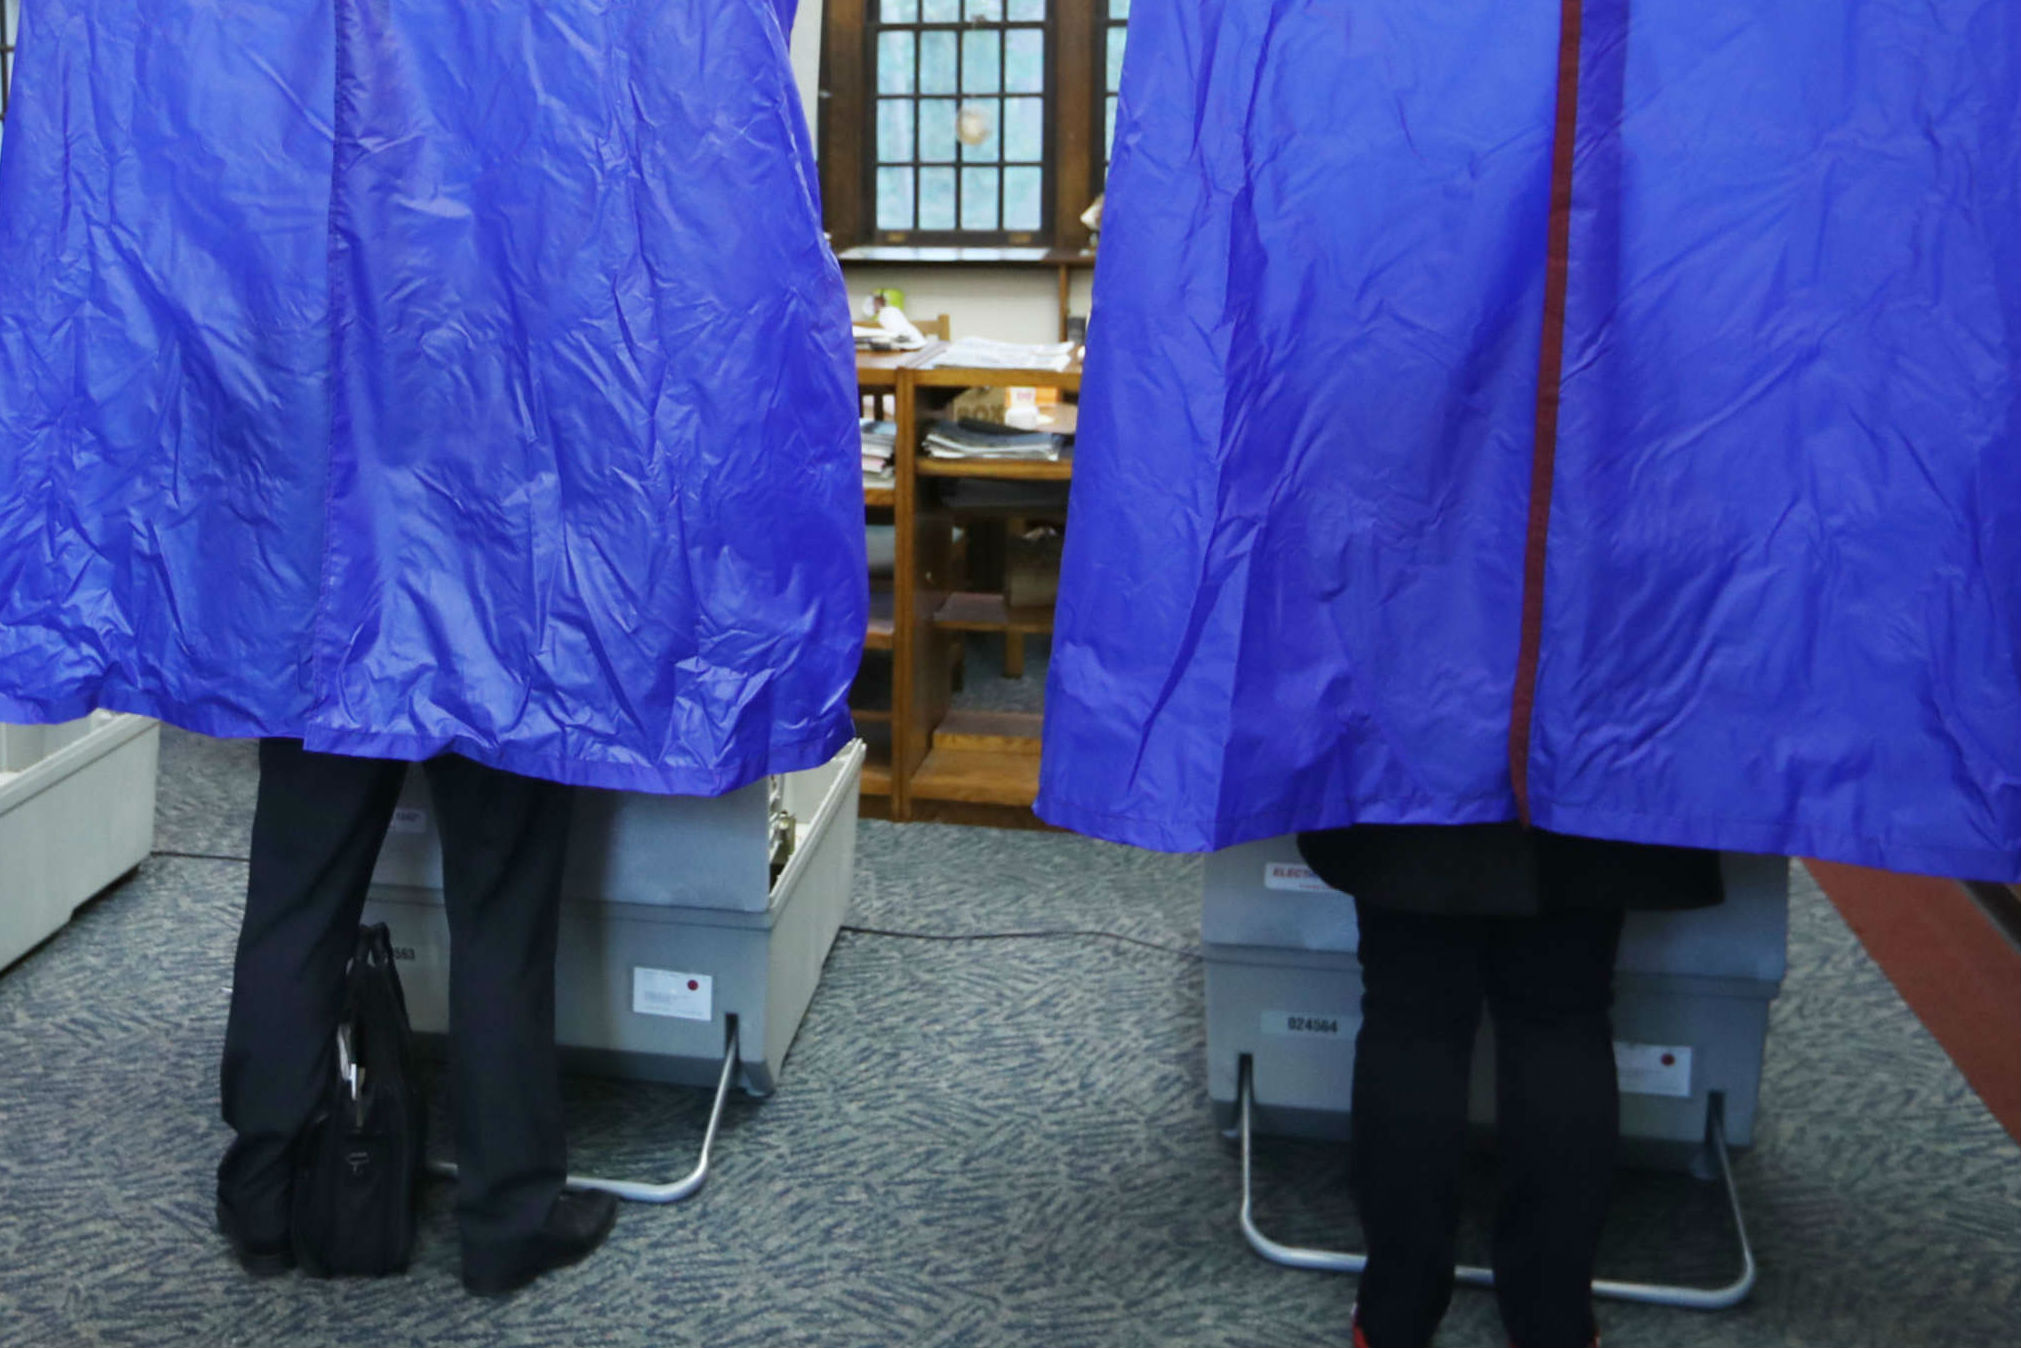 Tuesday is primary election day in Pennsylvania. Polls will be open from 7 a.m. to 8 p.m.